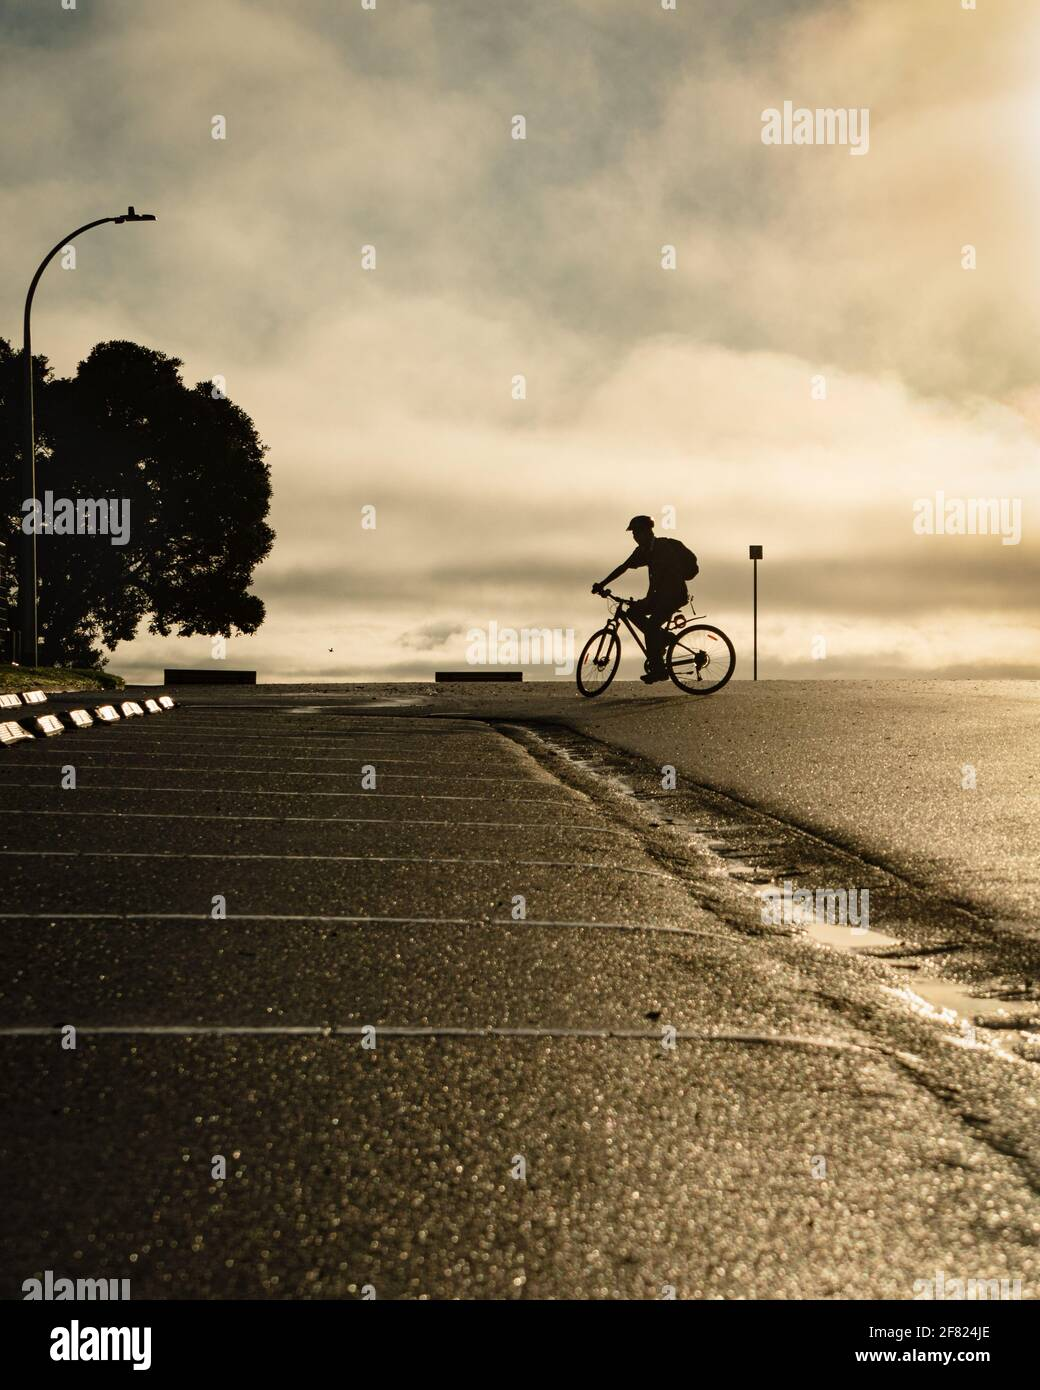 Silhouette image of a cyclist riding on the road at Milford beach, Auckland. Vertical format. Stock Photo